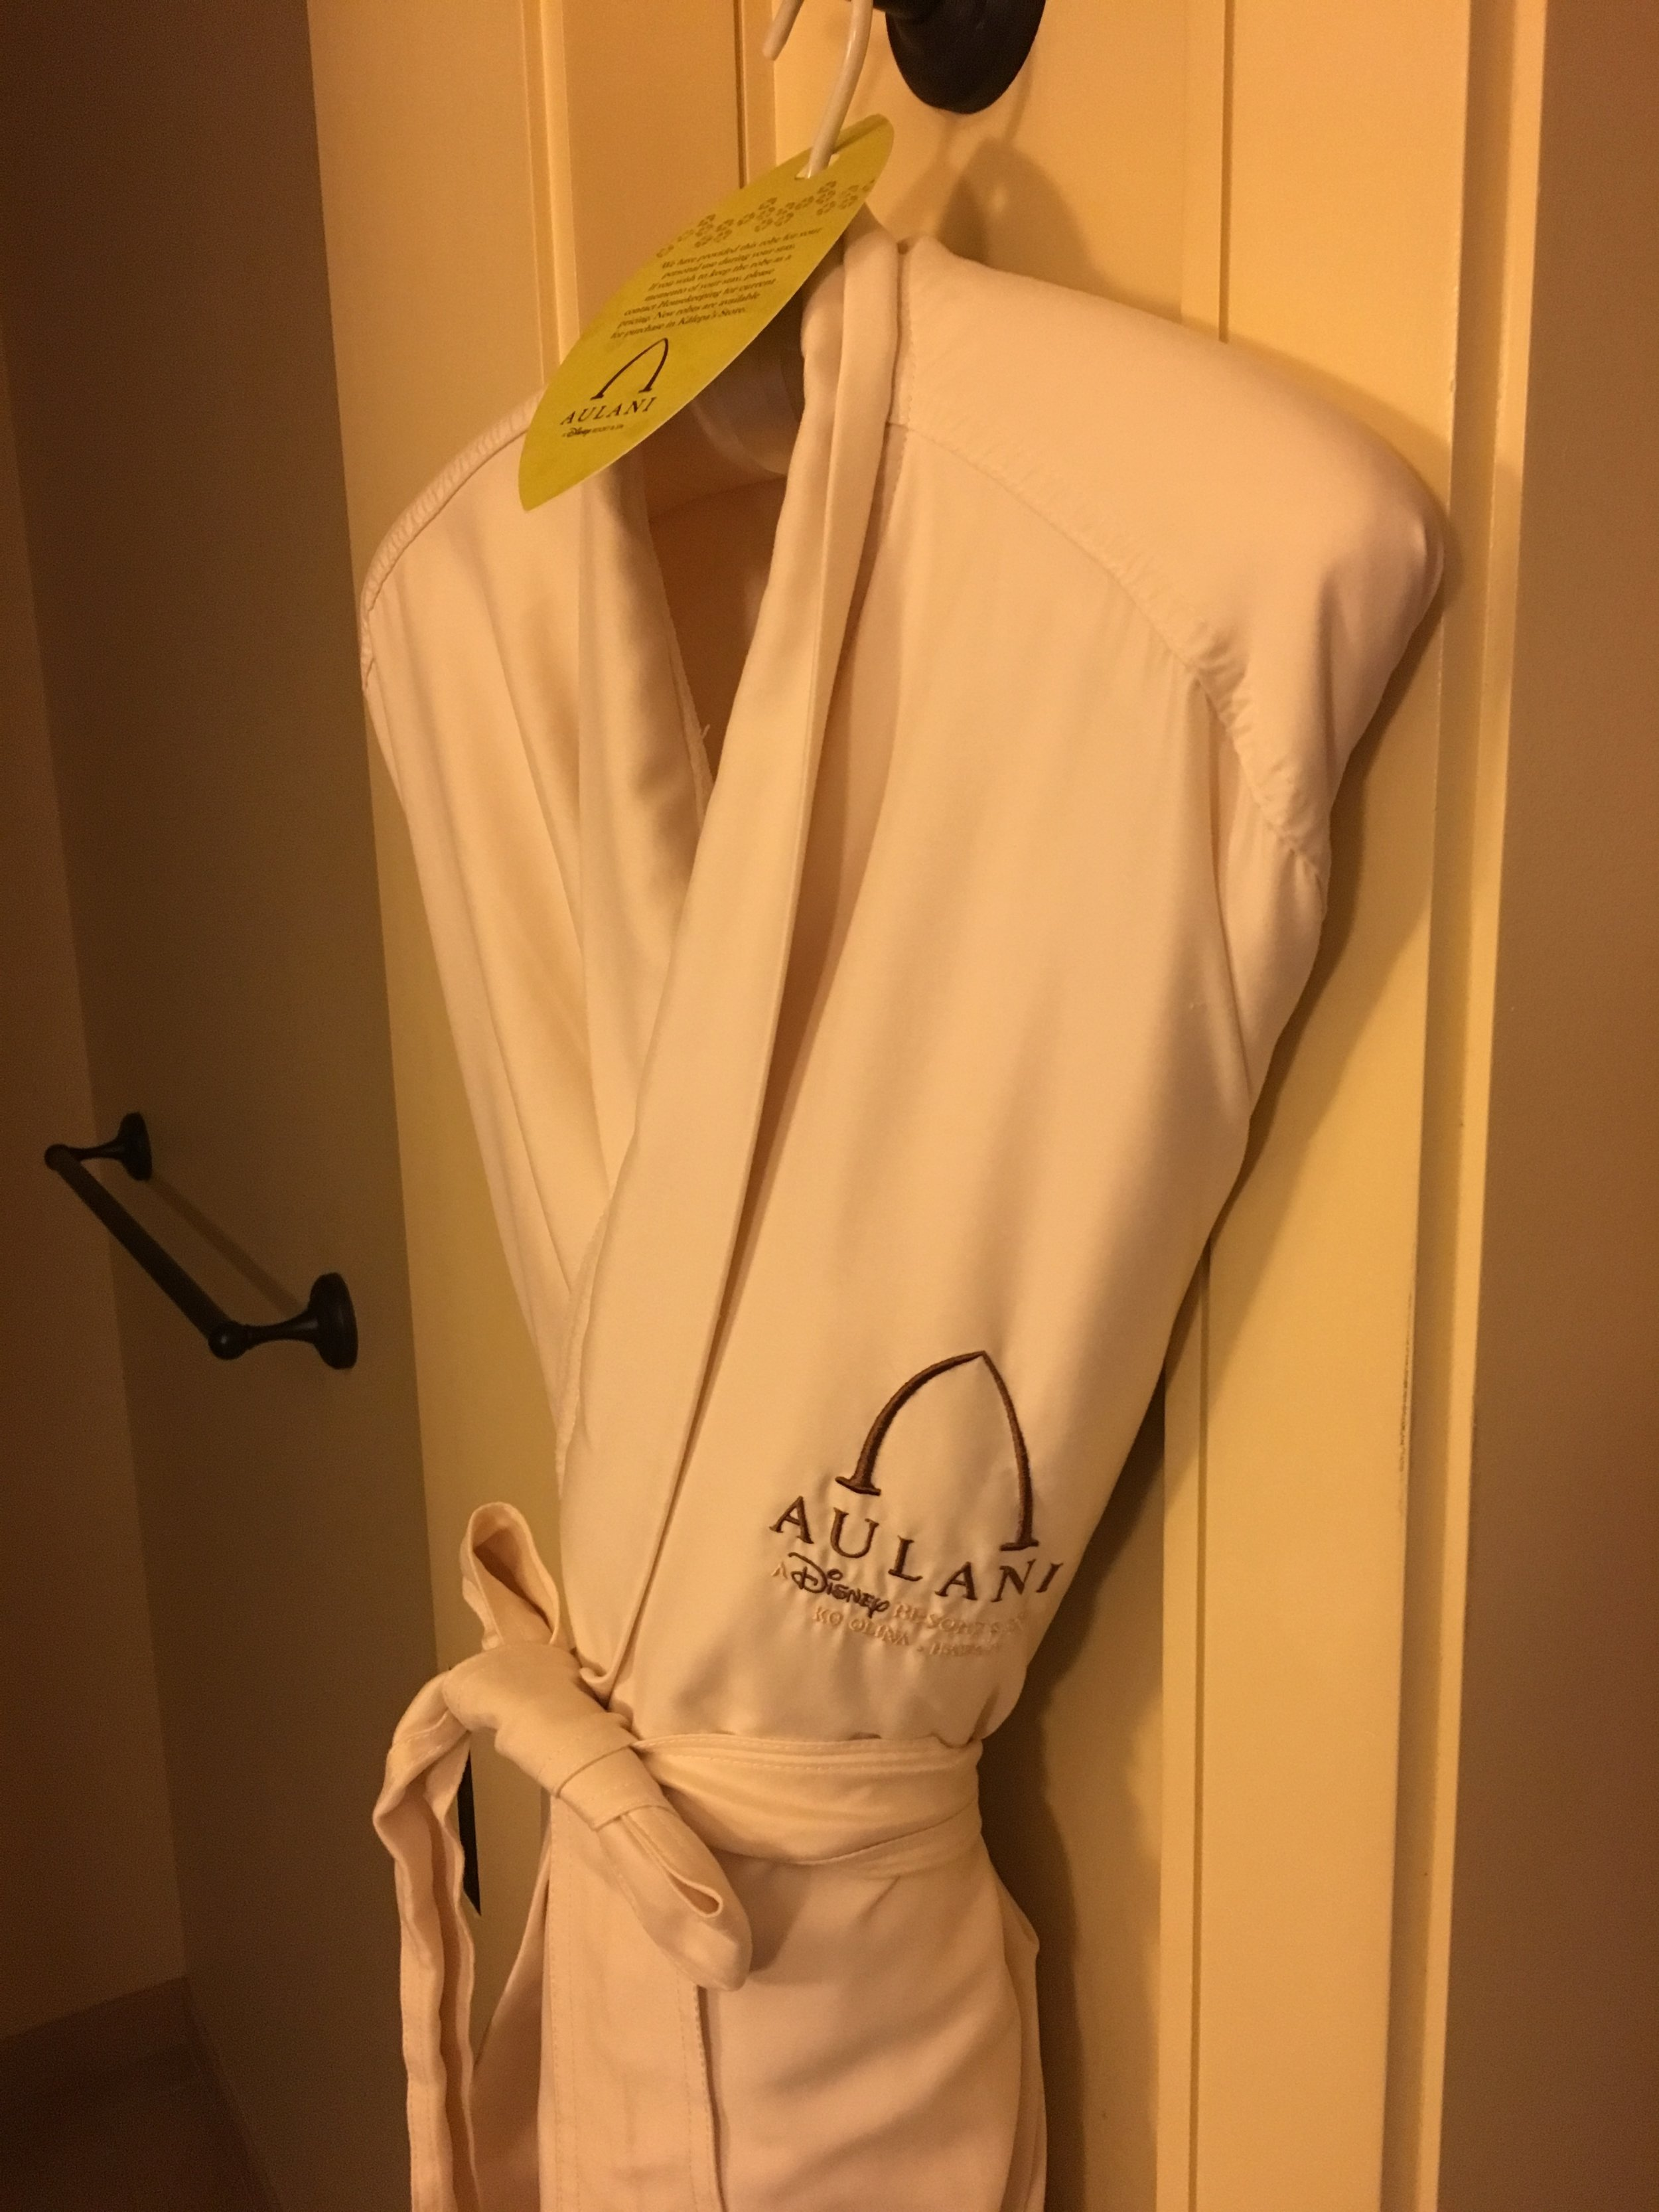 There were two lovely robes in the room.